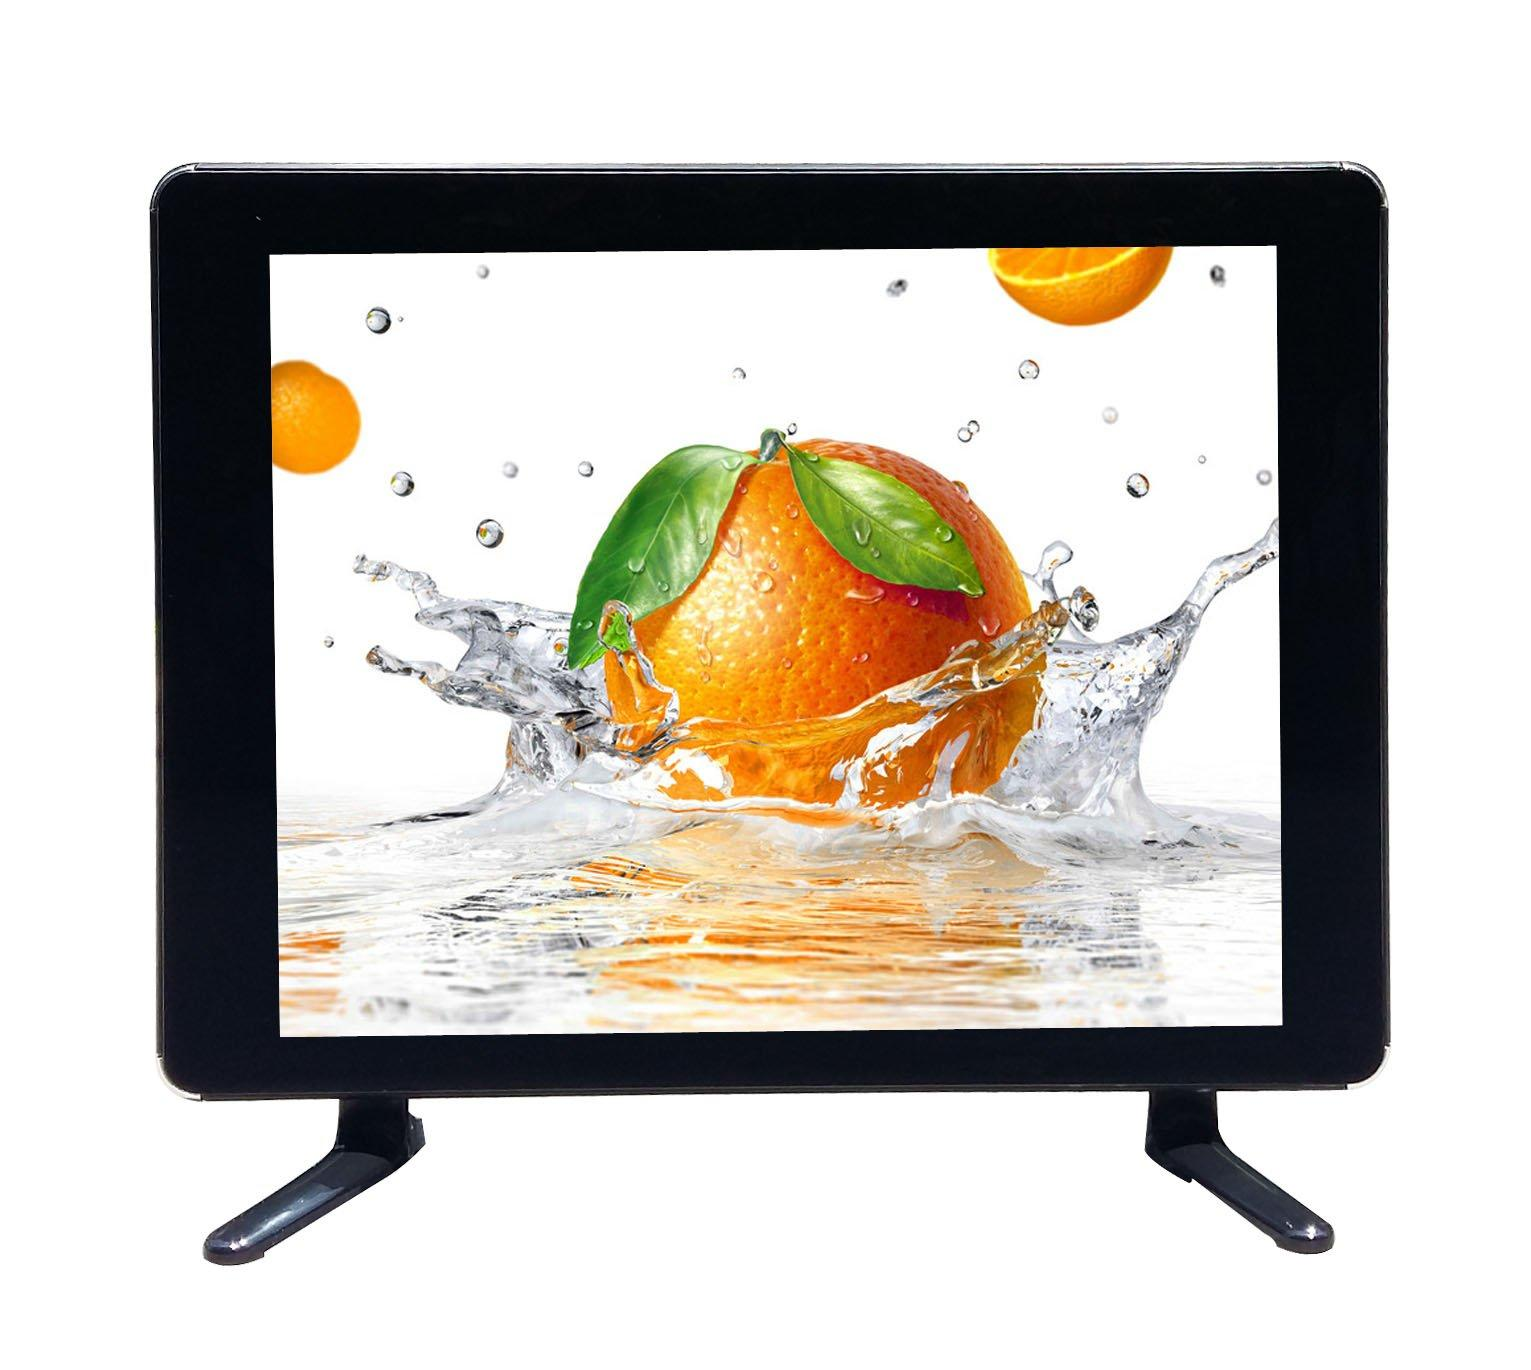 Xinyao LCD on-sale tv lcd 17 new style for tv screen-1